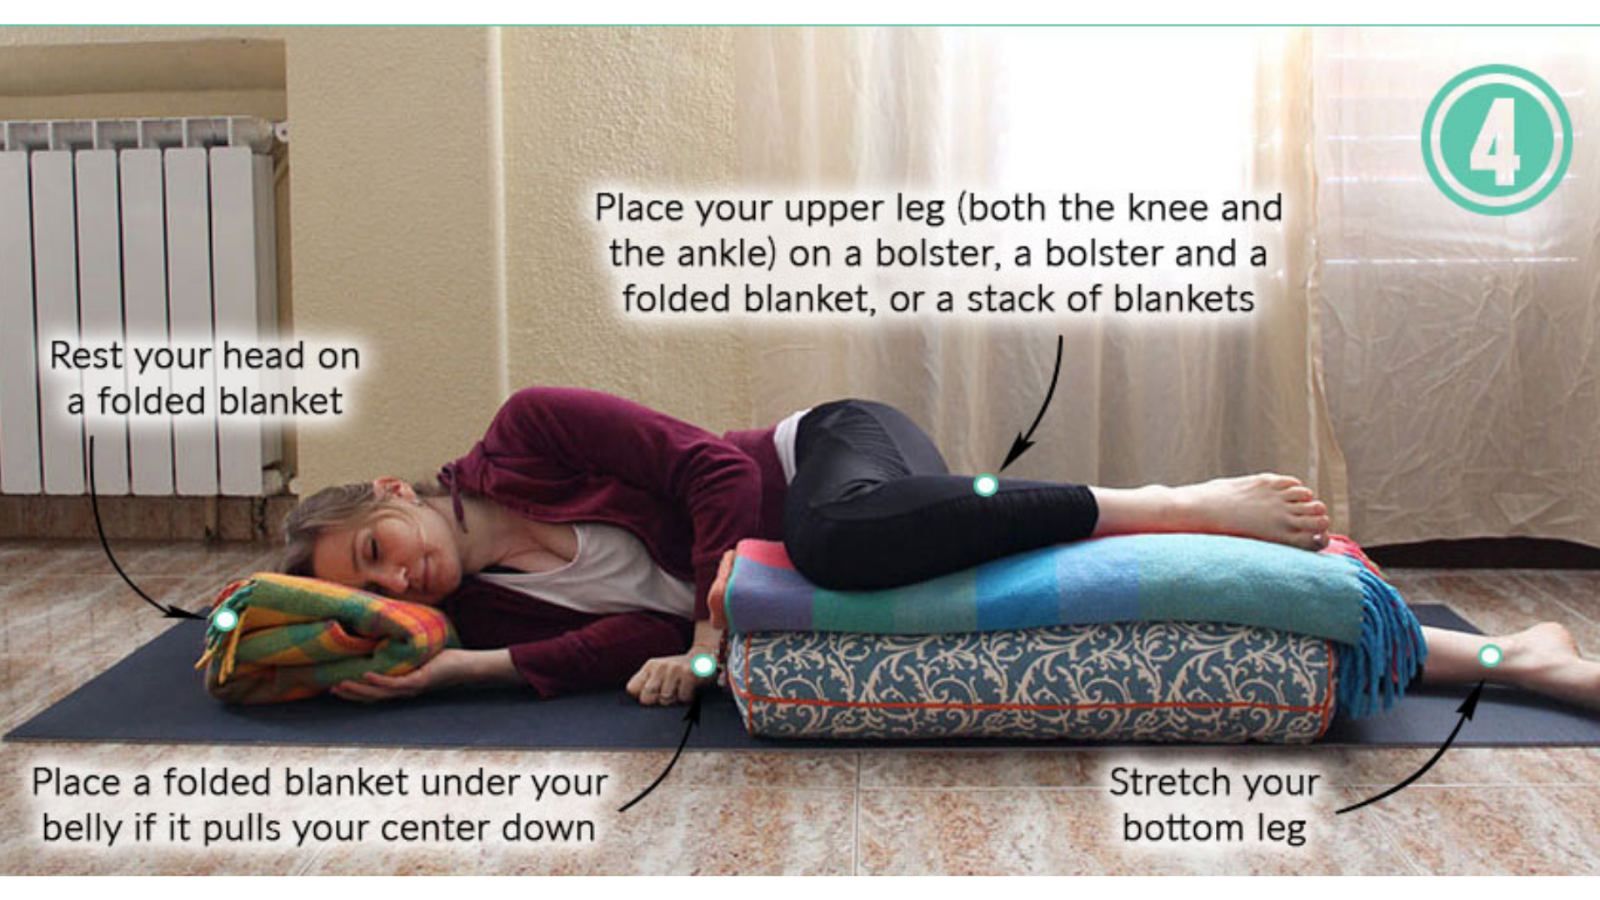 Yoga teaching tips for Side-Lying Savasana pose with bent upper knee and props for pregnant students